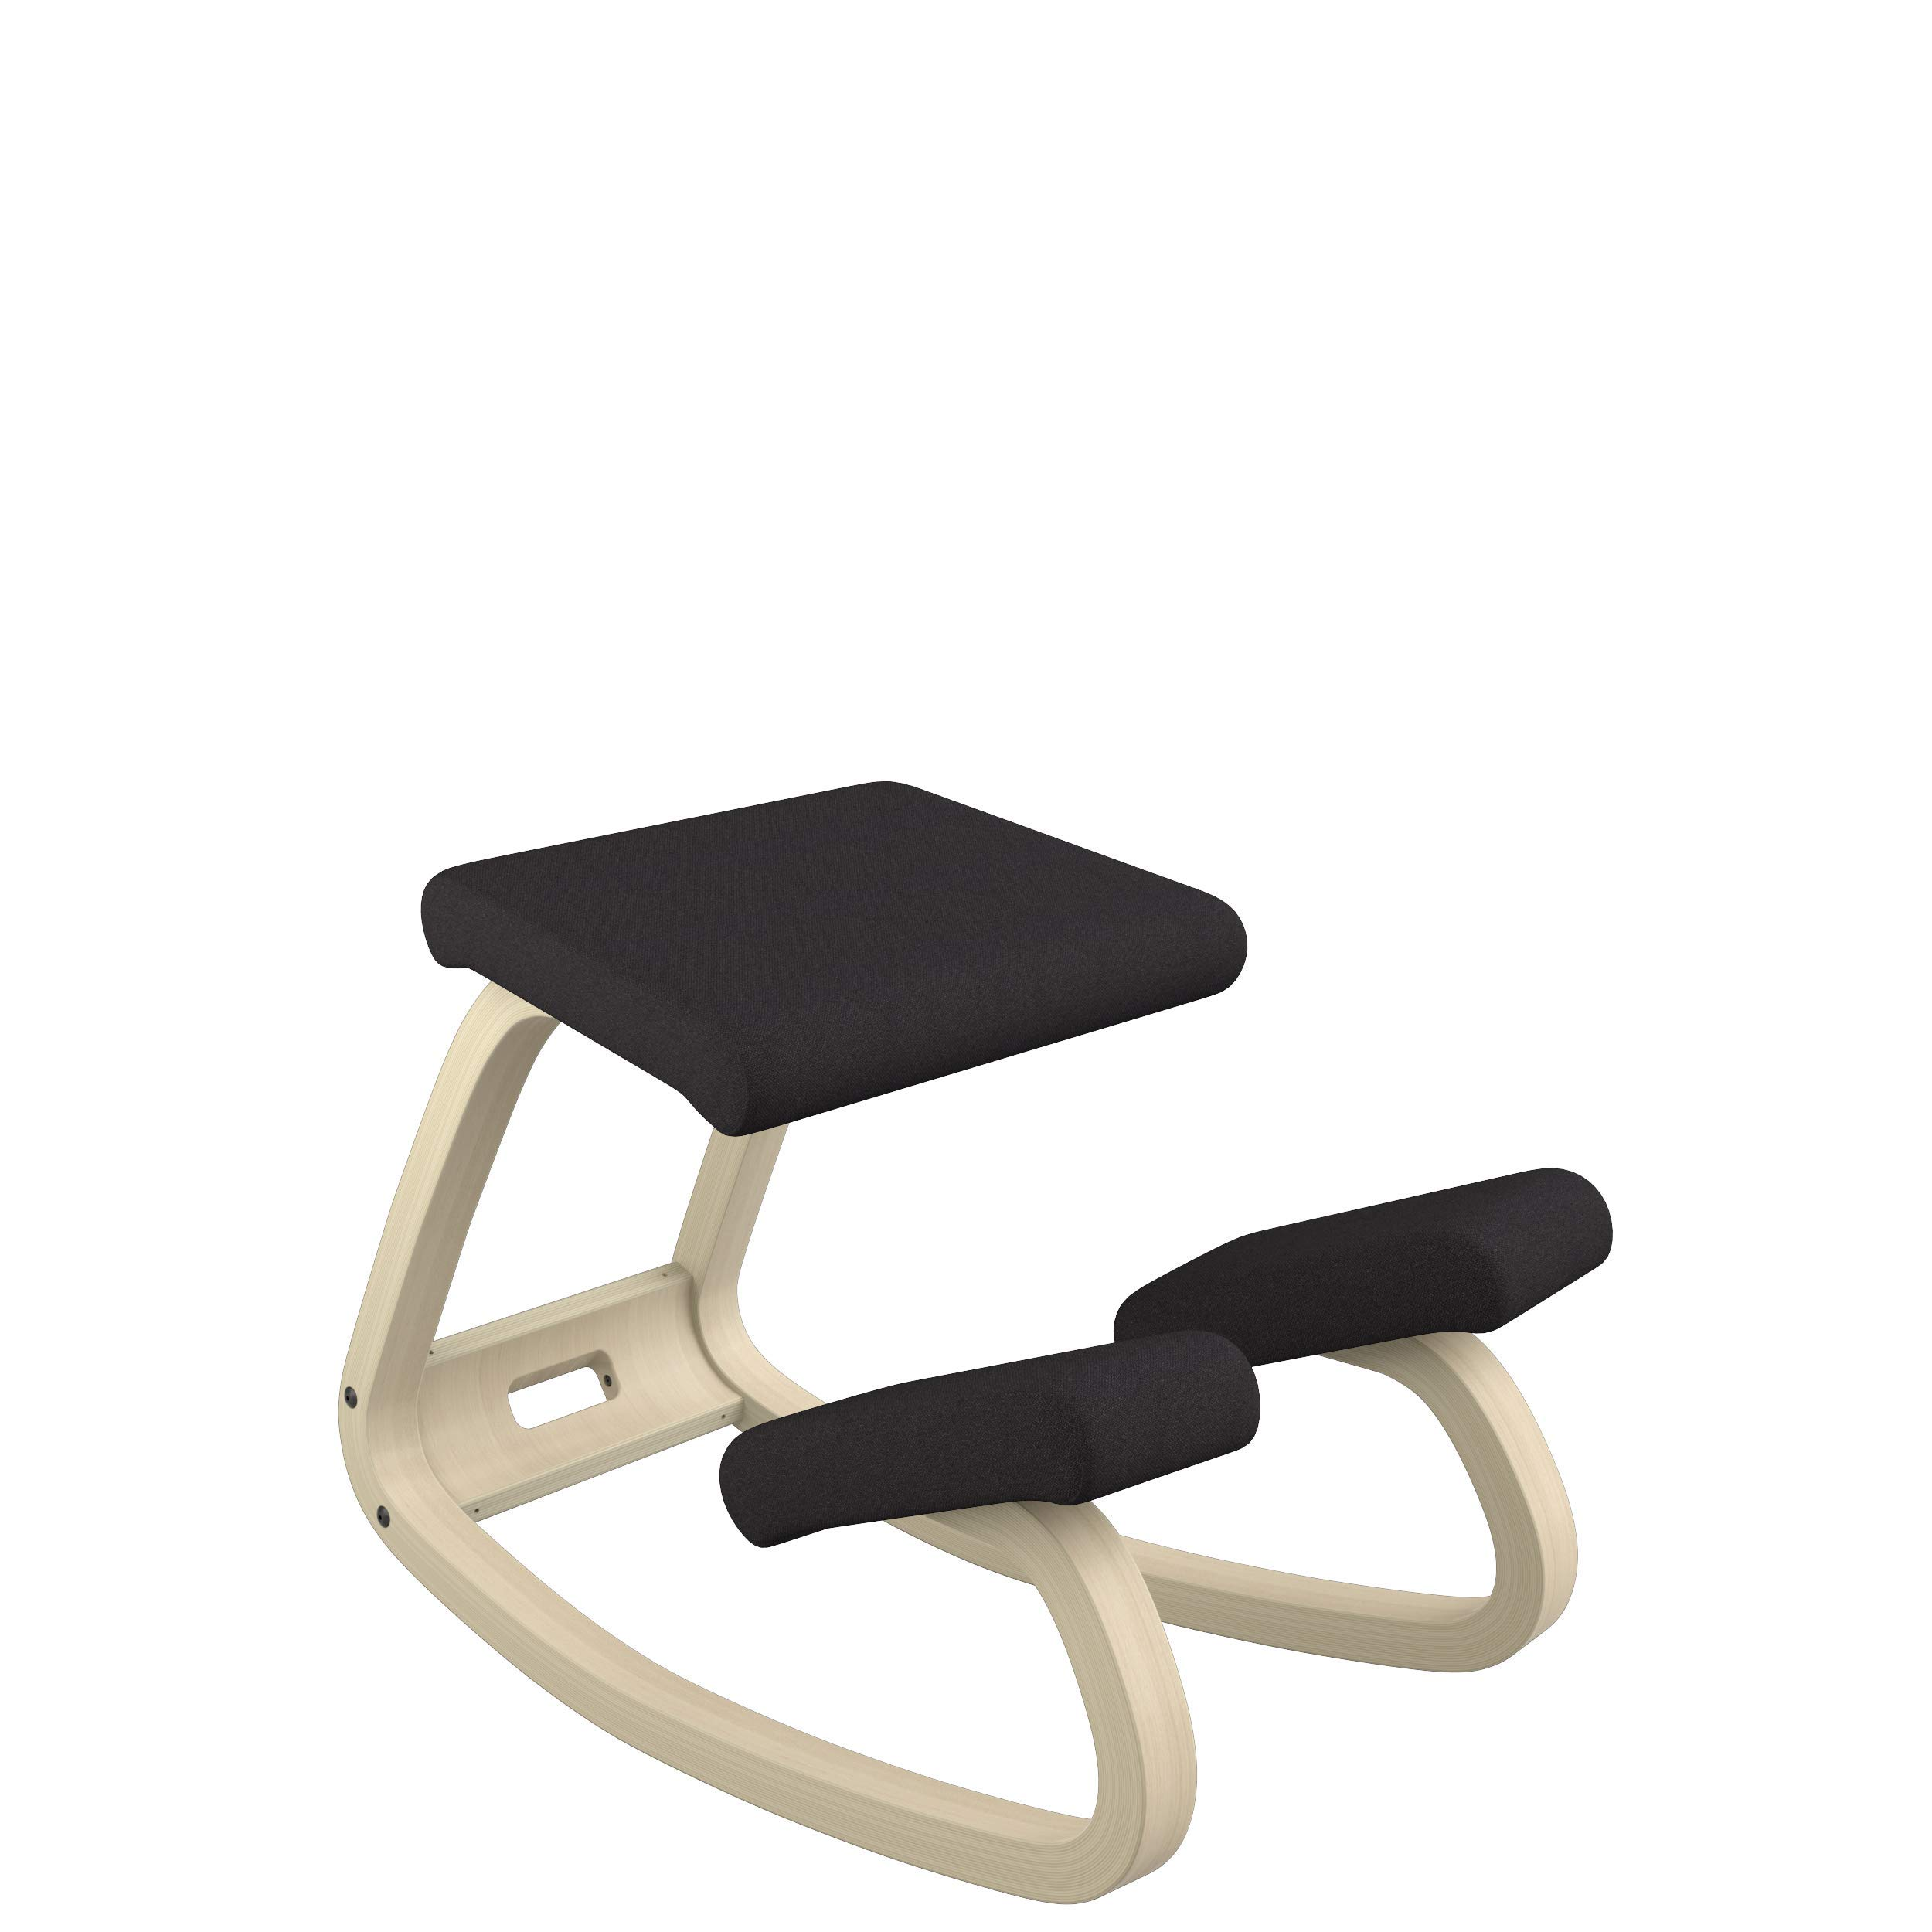 Varier Variable Balans Original Kneeling Chair Designed by Peter Opsvik (Black Revive Fabric with Natural Ash Base) by Varier